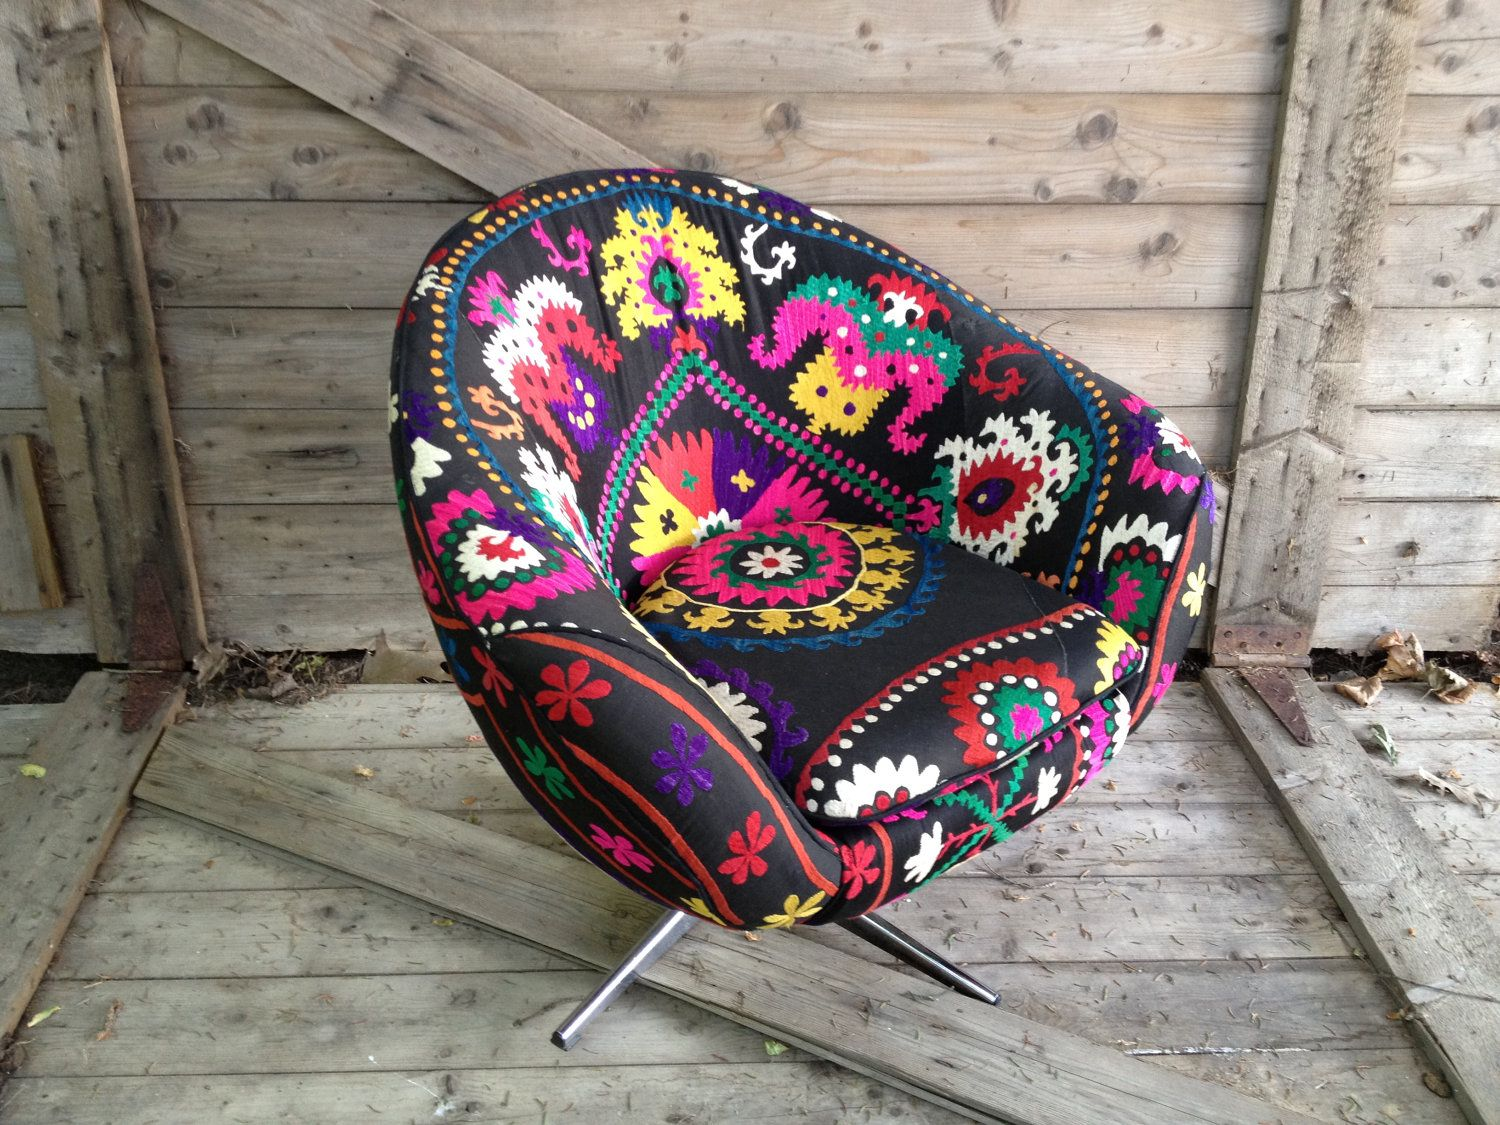 Mid Century Bucket Swivel Chair Re Fashioned In A Vintage Black Suzani With  Vibrant